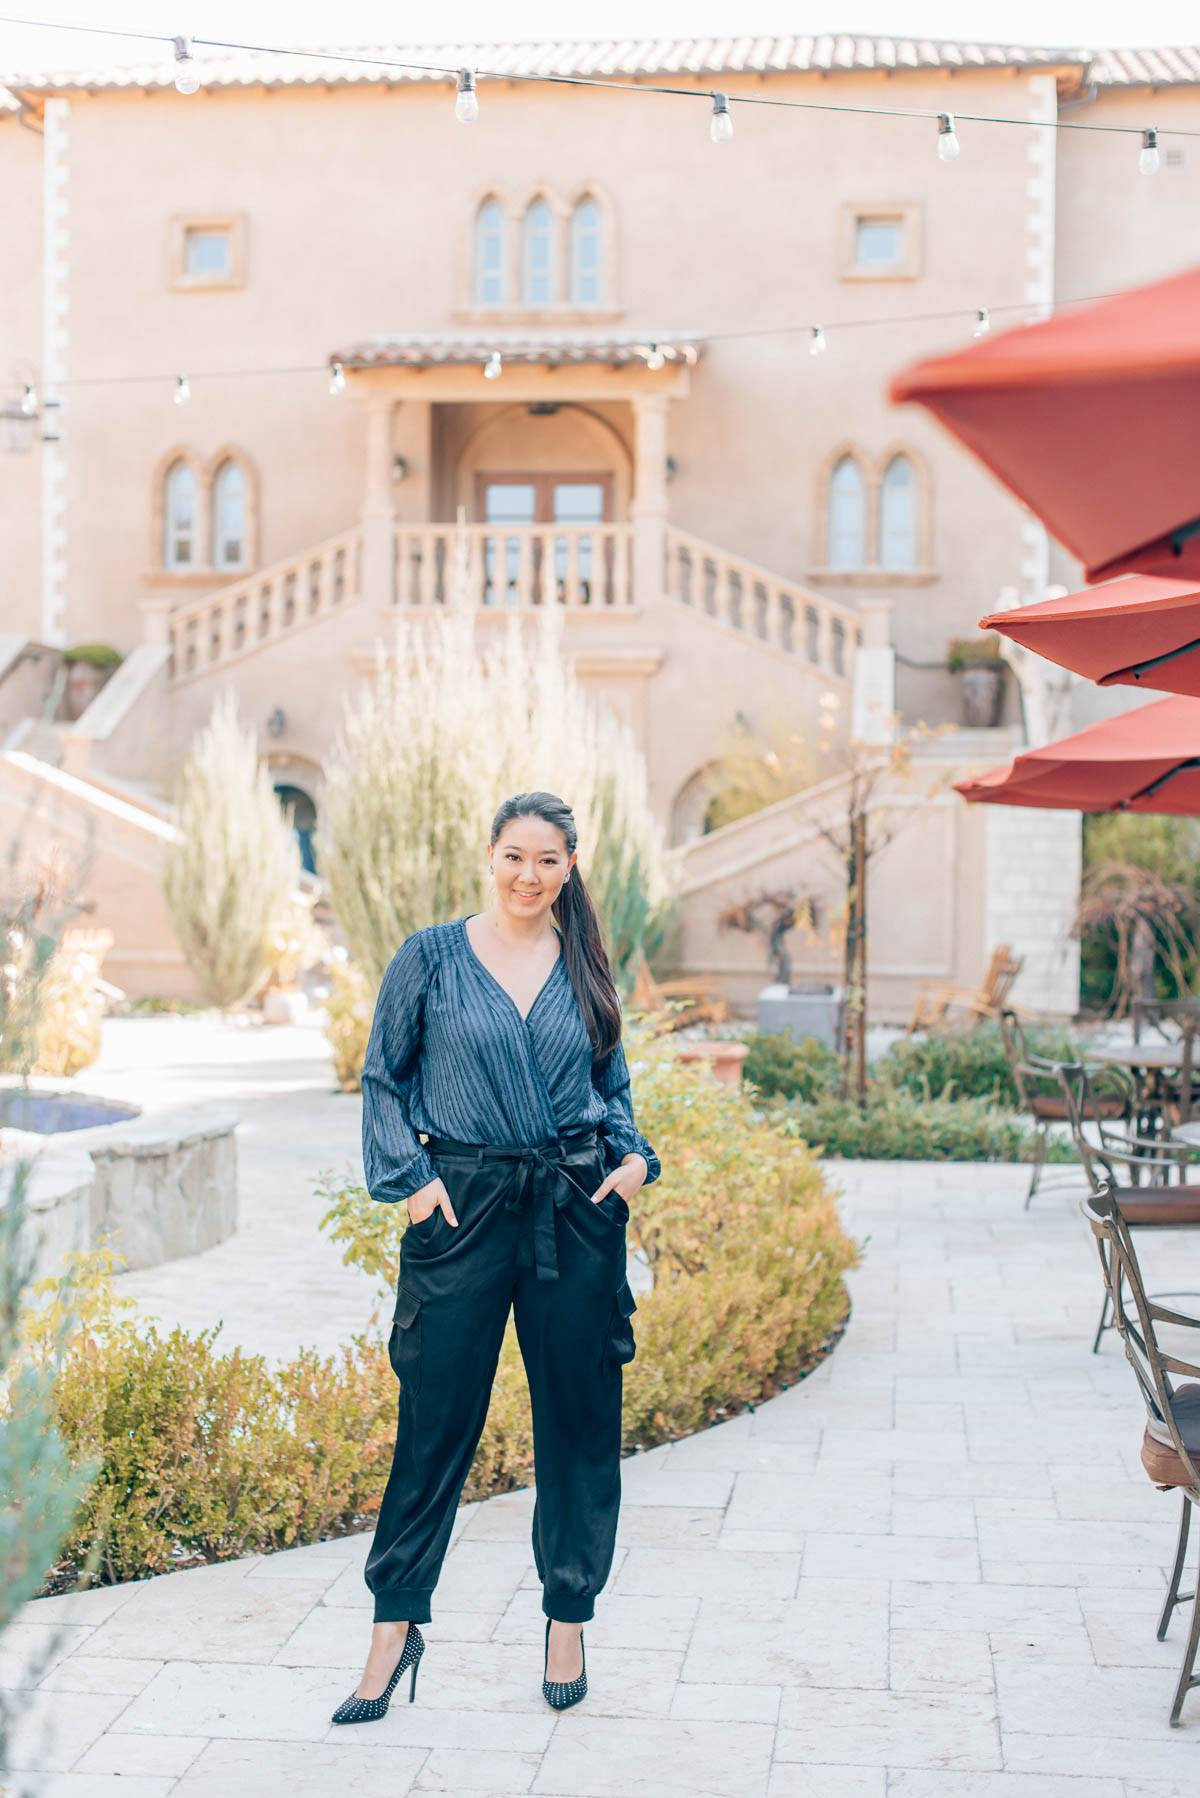 Allegretto Paso Robles hotel review by travel blogger What The Fab